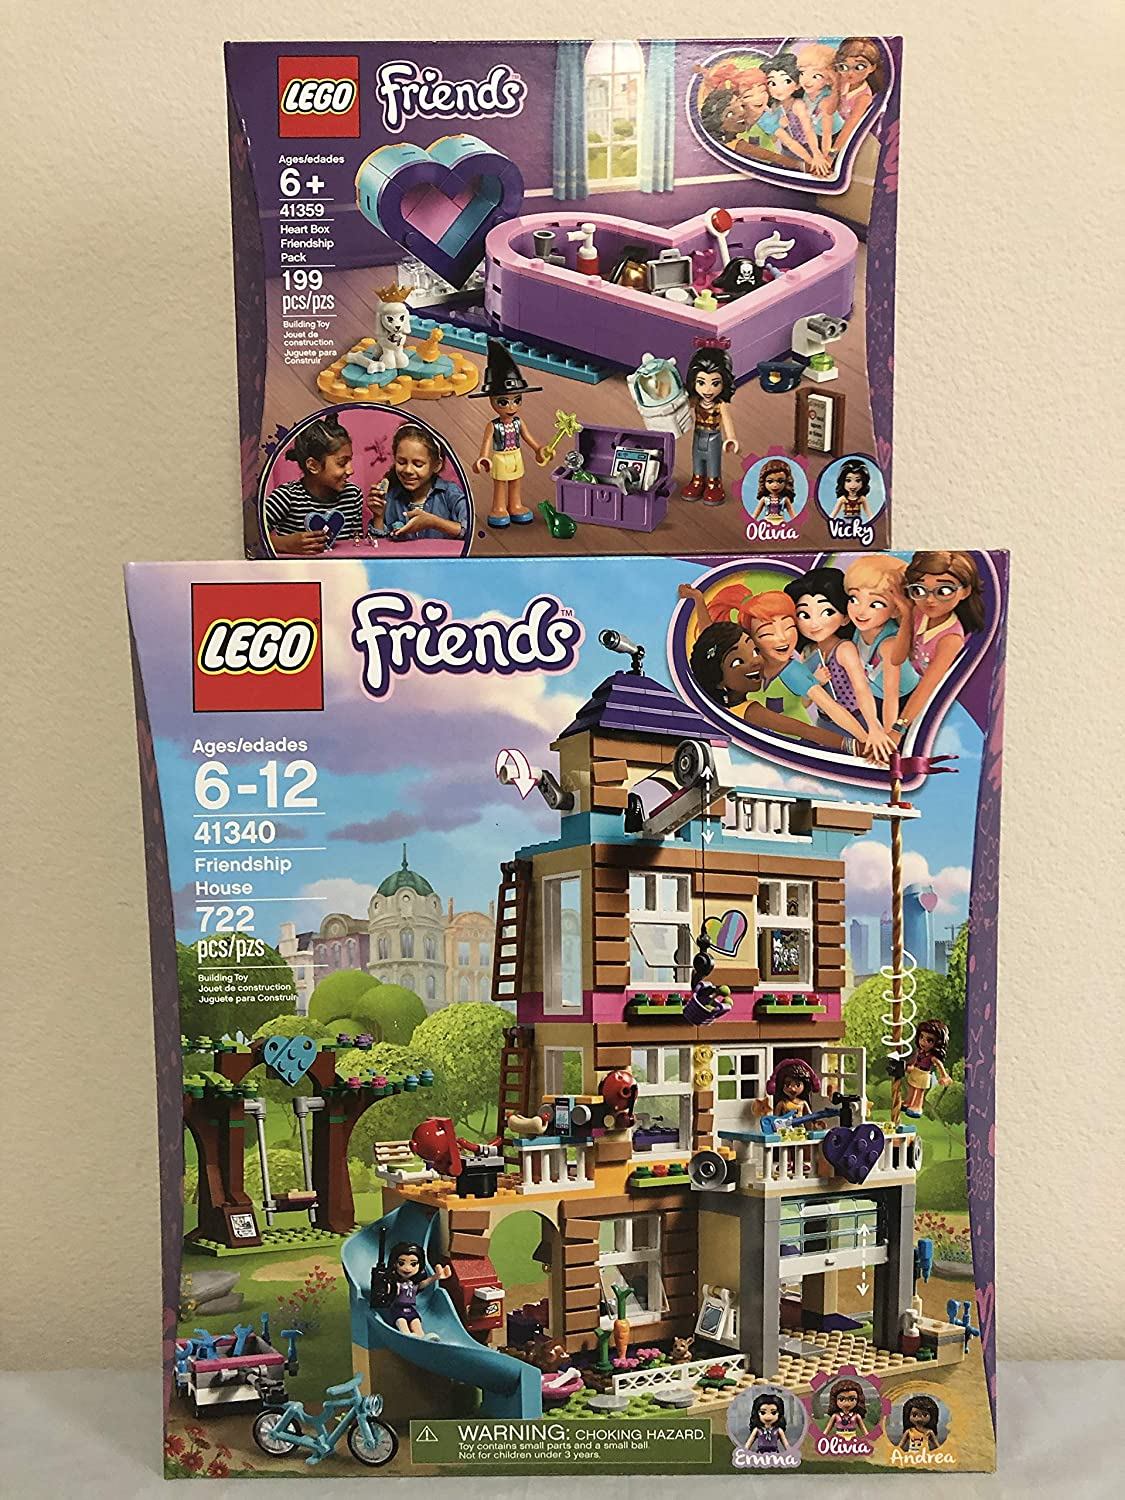 Lego Friends Friendship House Bundled with Lego Friends Heart Box Friendship Pack